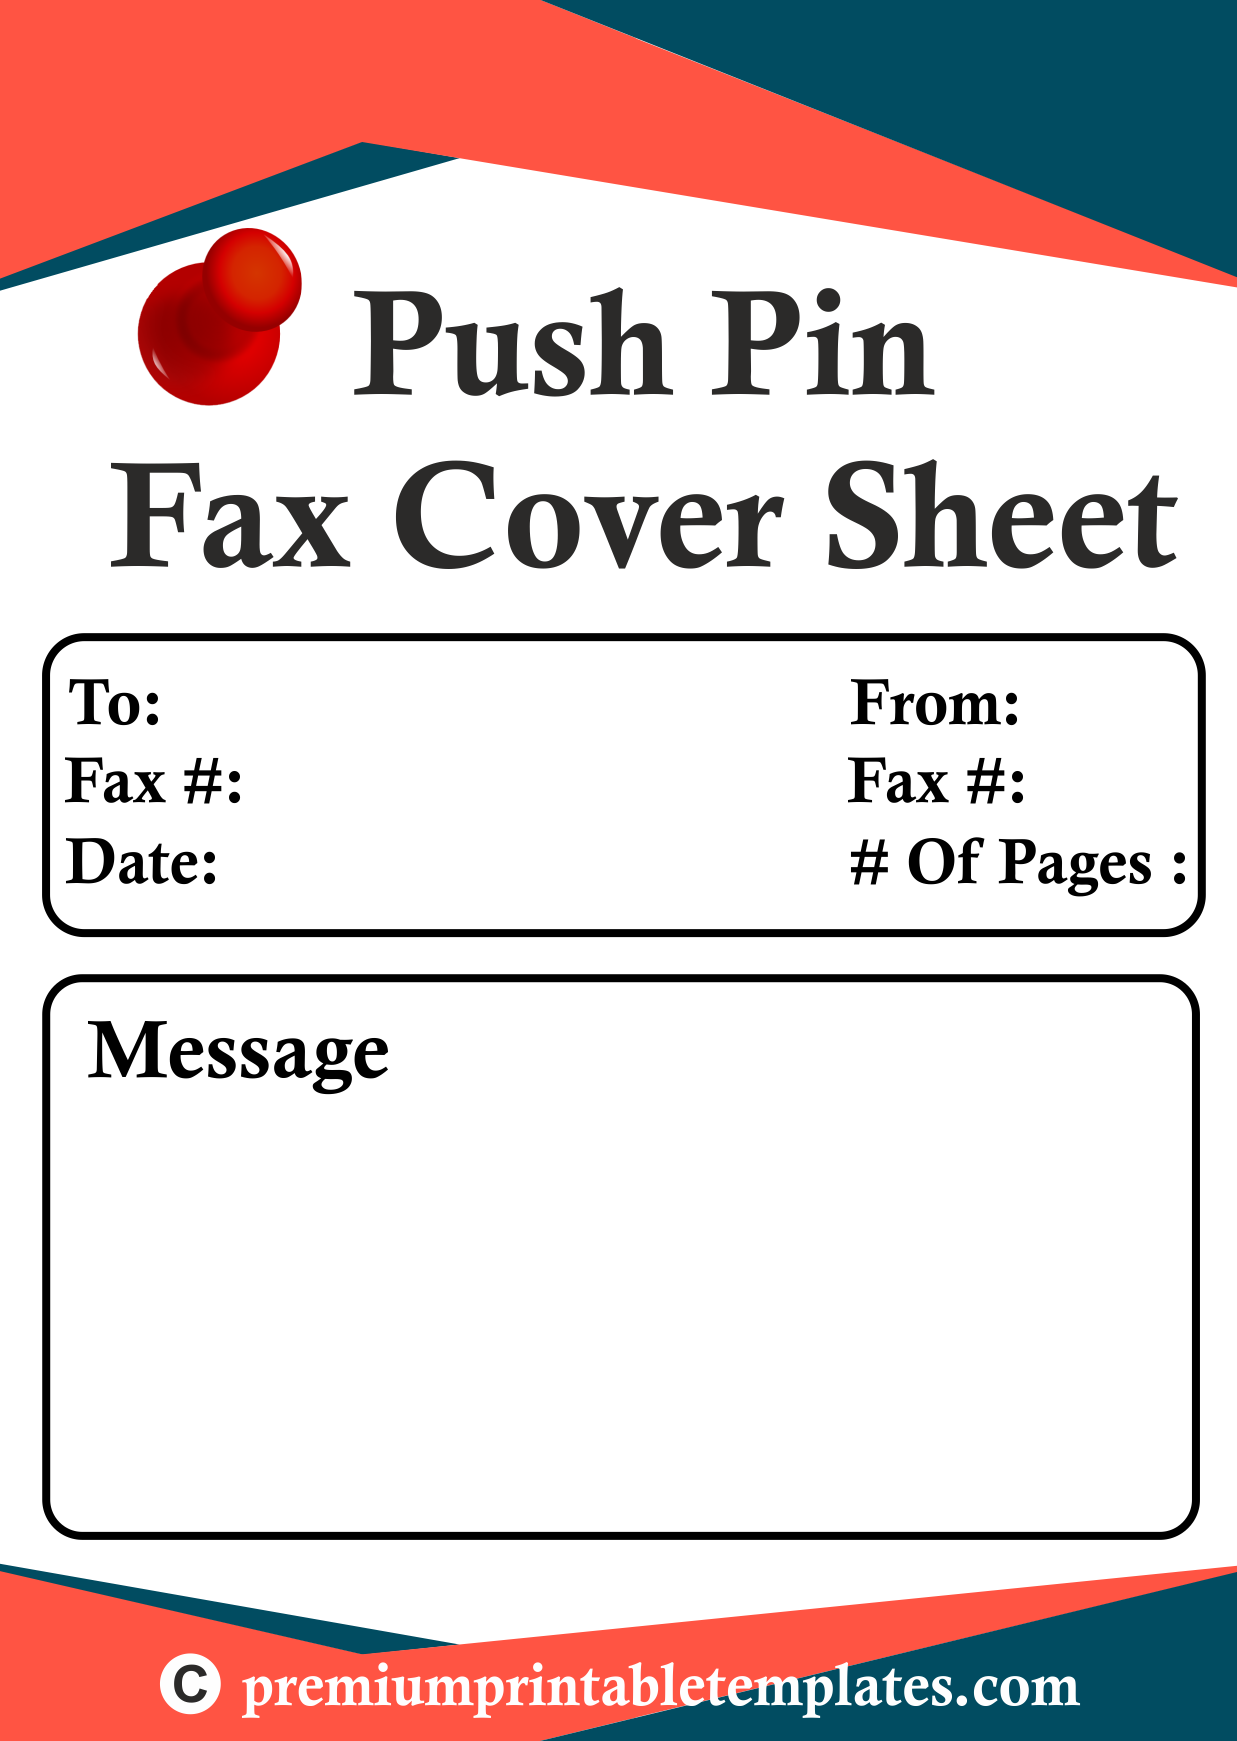 Fax Cover Sheets Templates This Printable Fax Cover Sheet Shows A Large Pushpin On A Sheet Of .